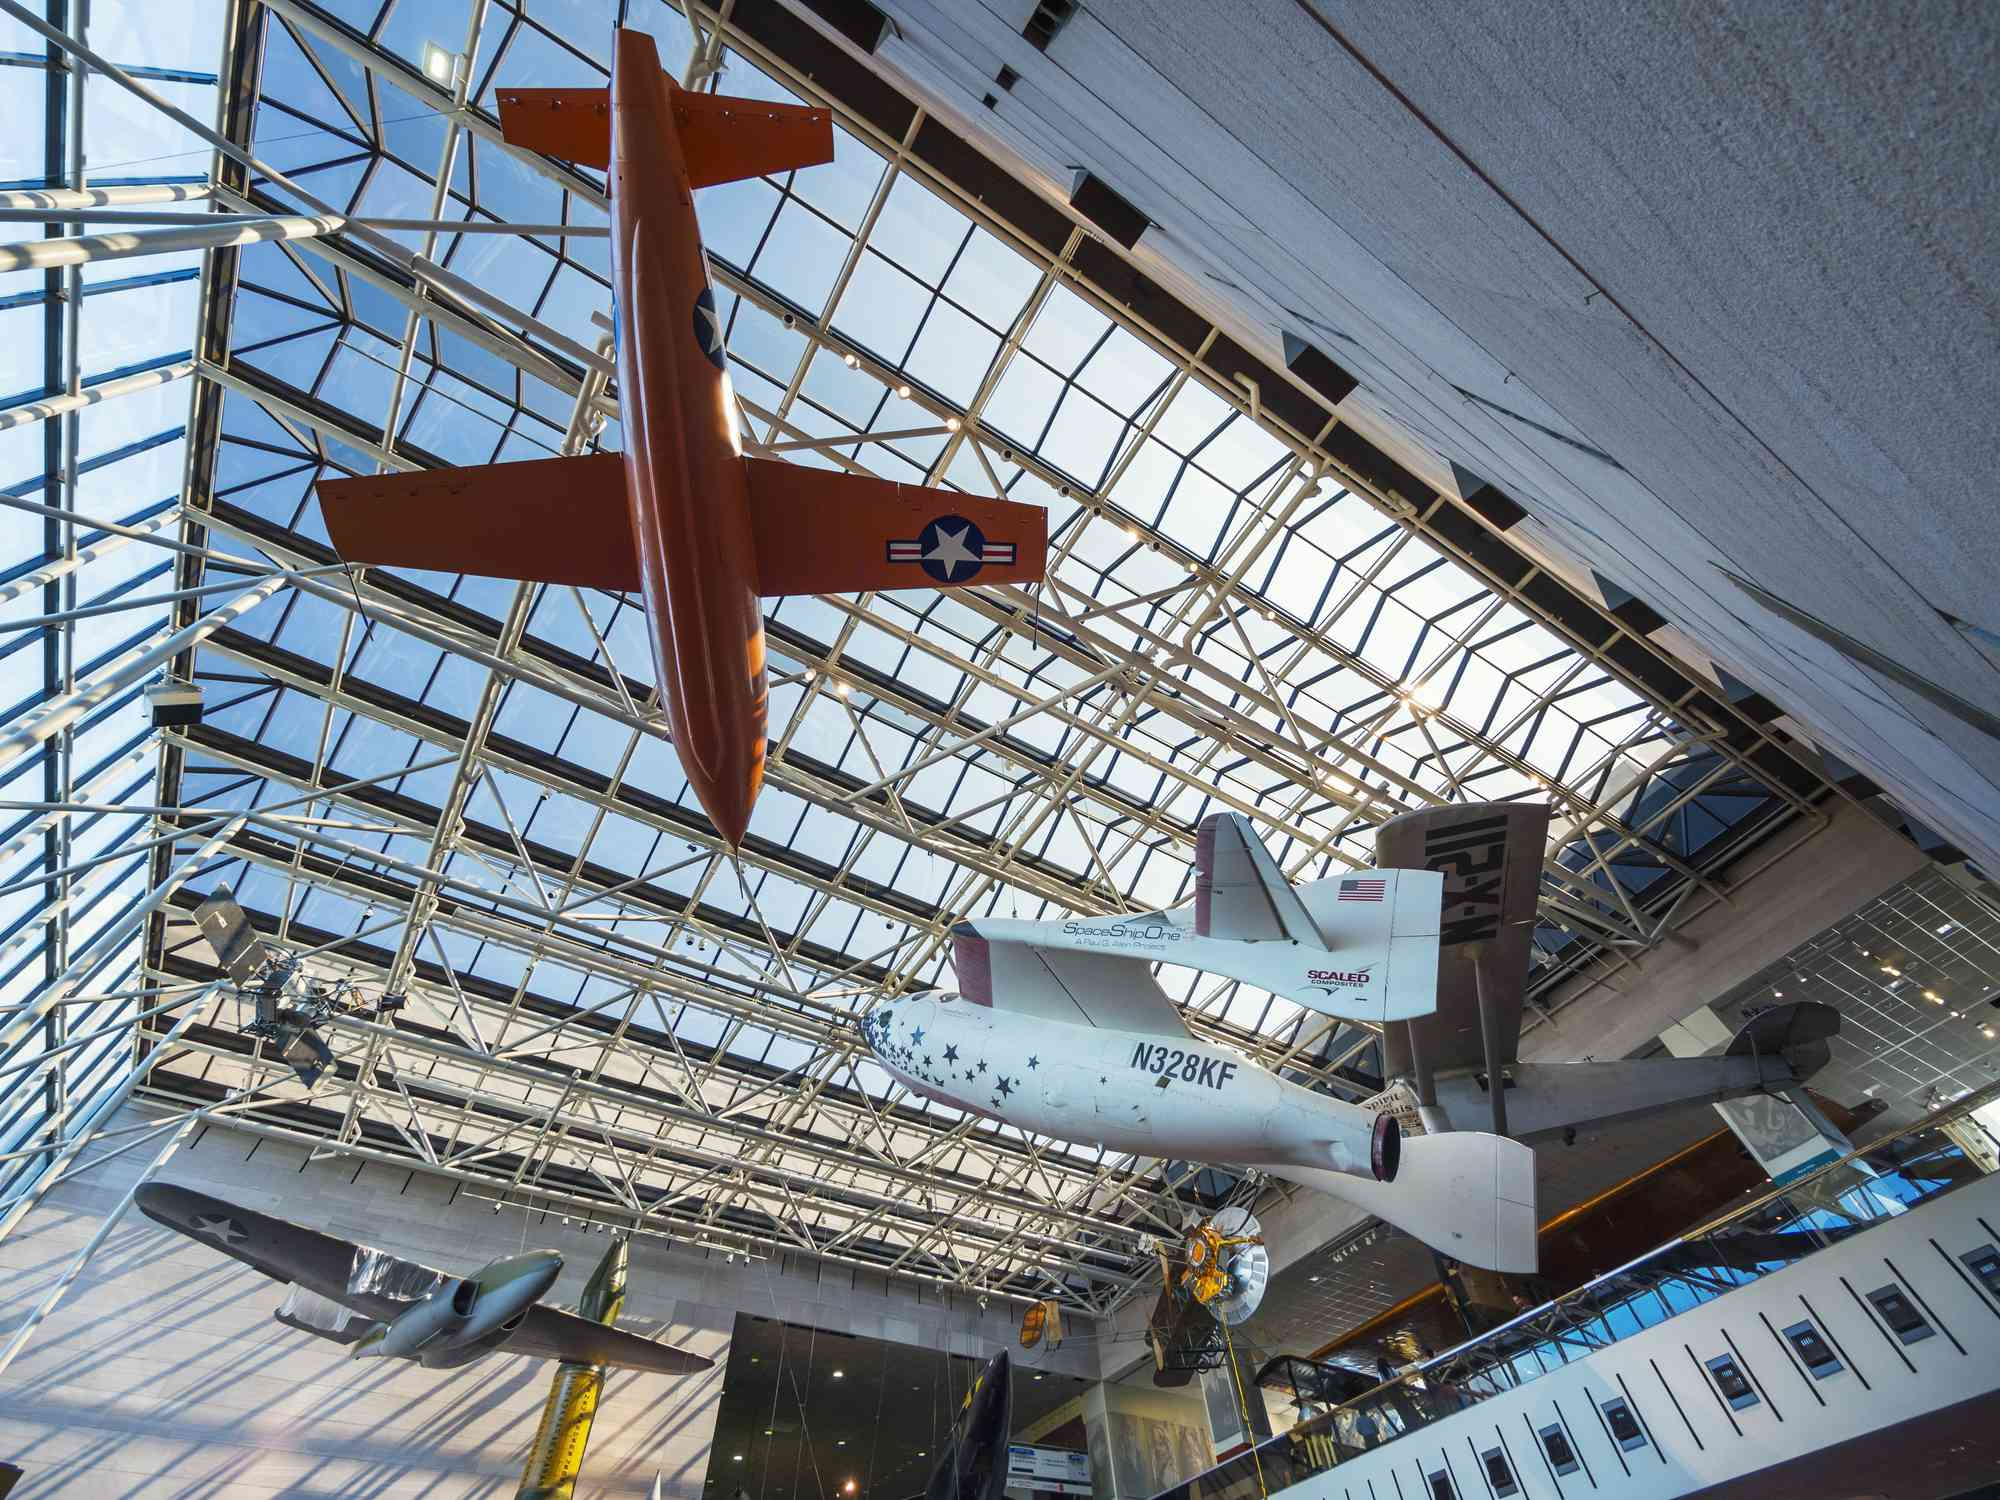 The National Air and Space Museum, Washington, DC.